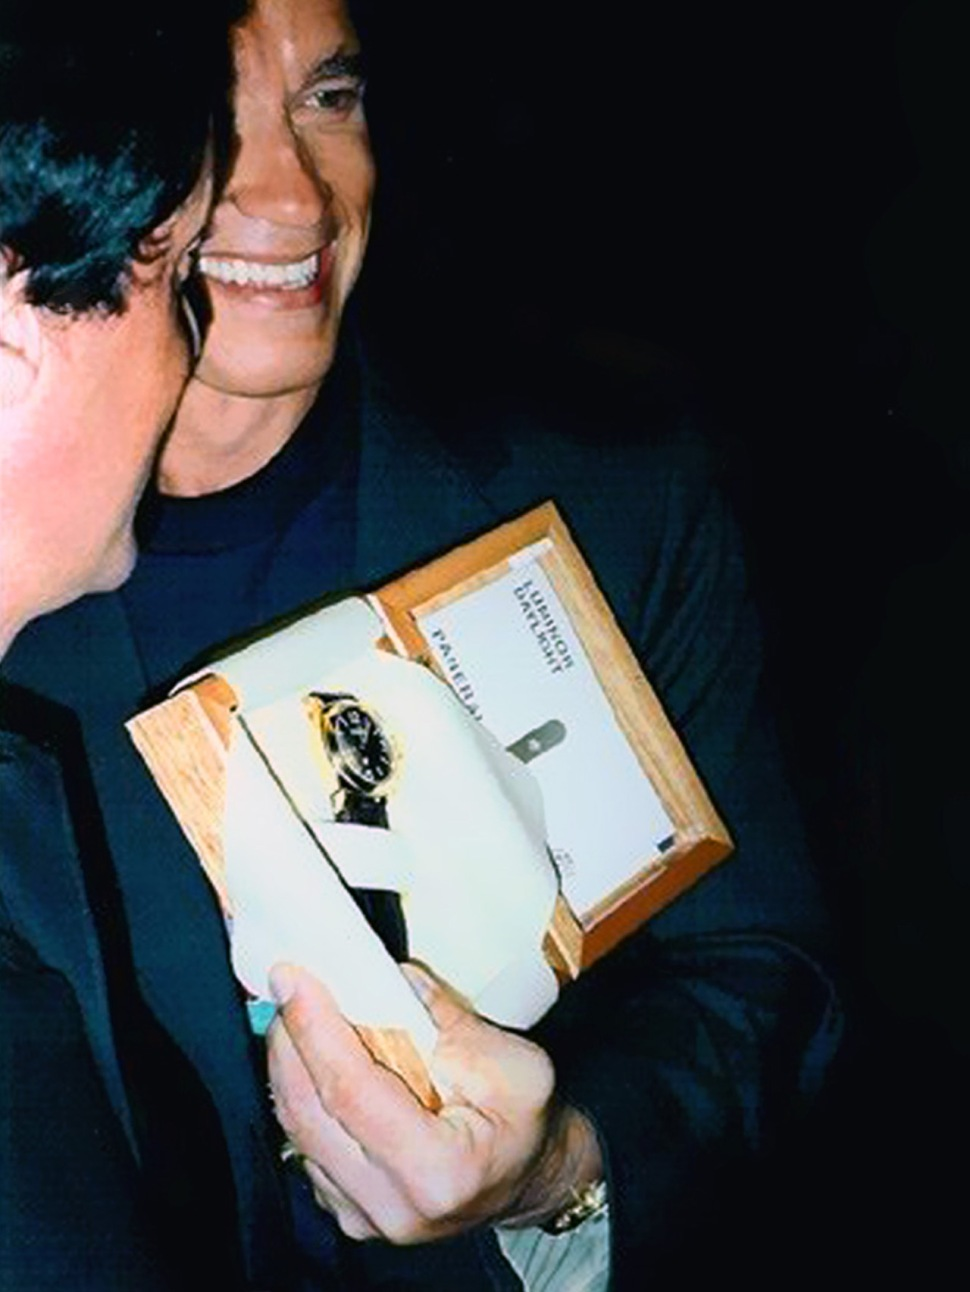 200328-arnold-schwarzenegger-sylvester-stallone-gold-plated-luminor-logo-panerai-booklet-planet-hollywood-berlin-1996